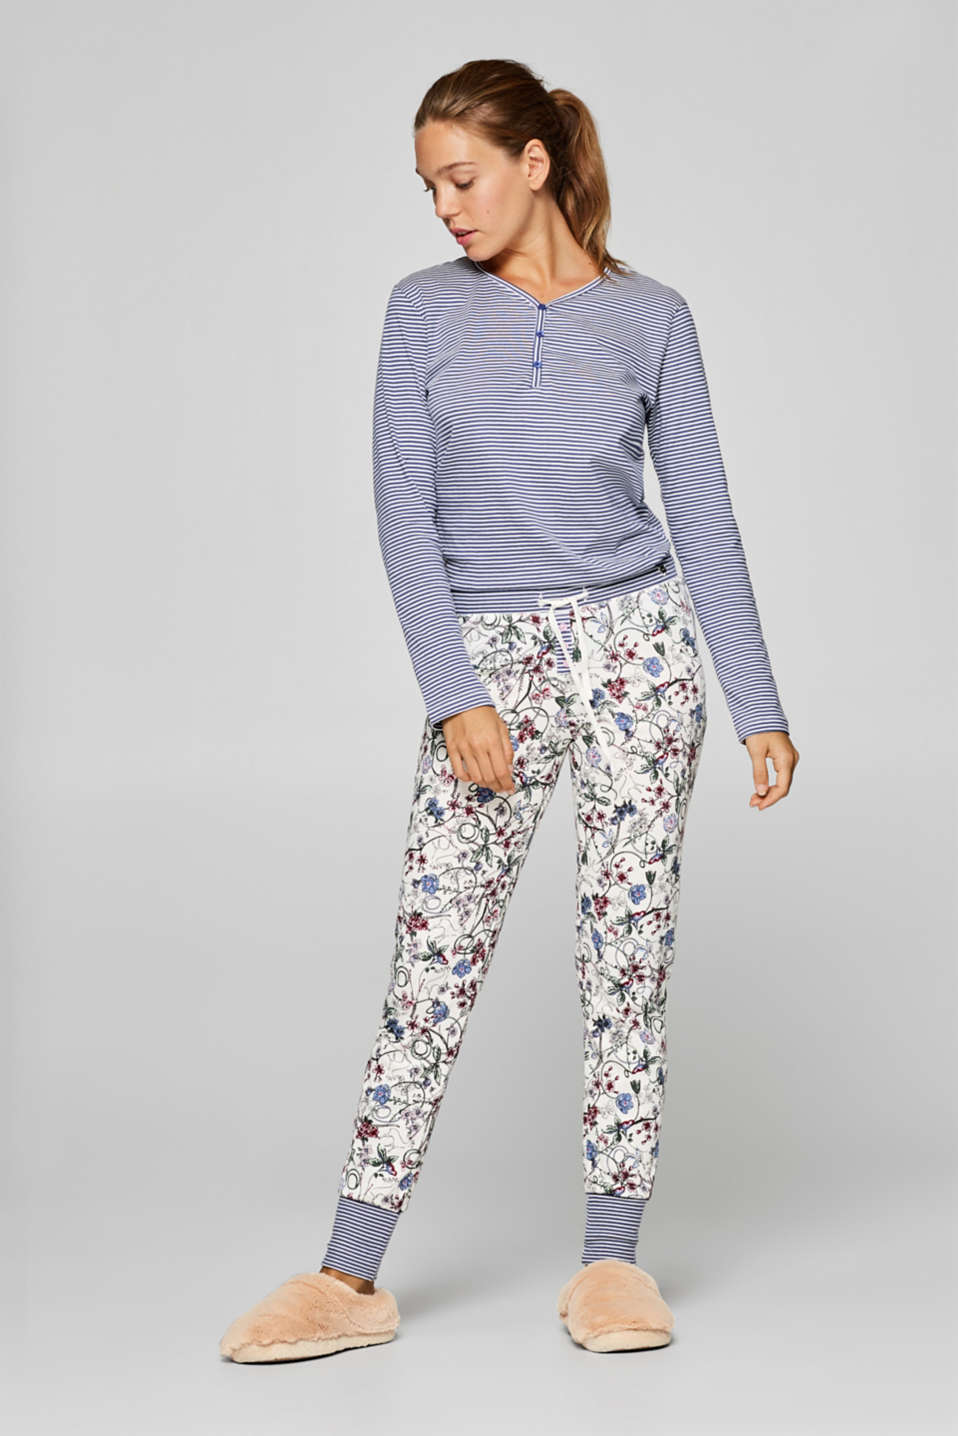 Esprit - single pant with print